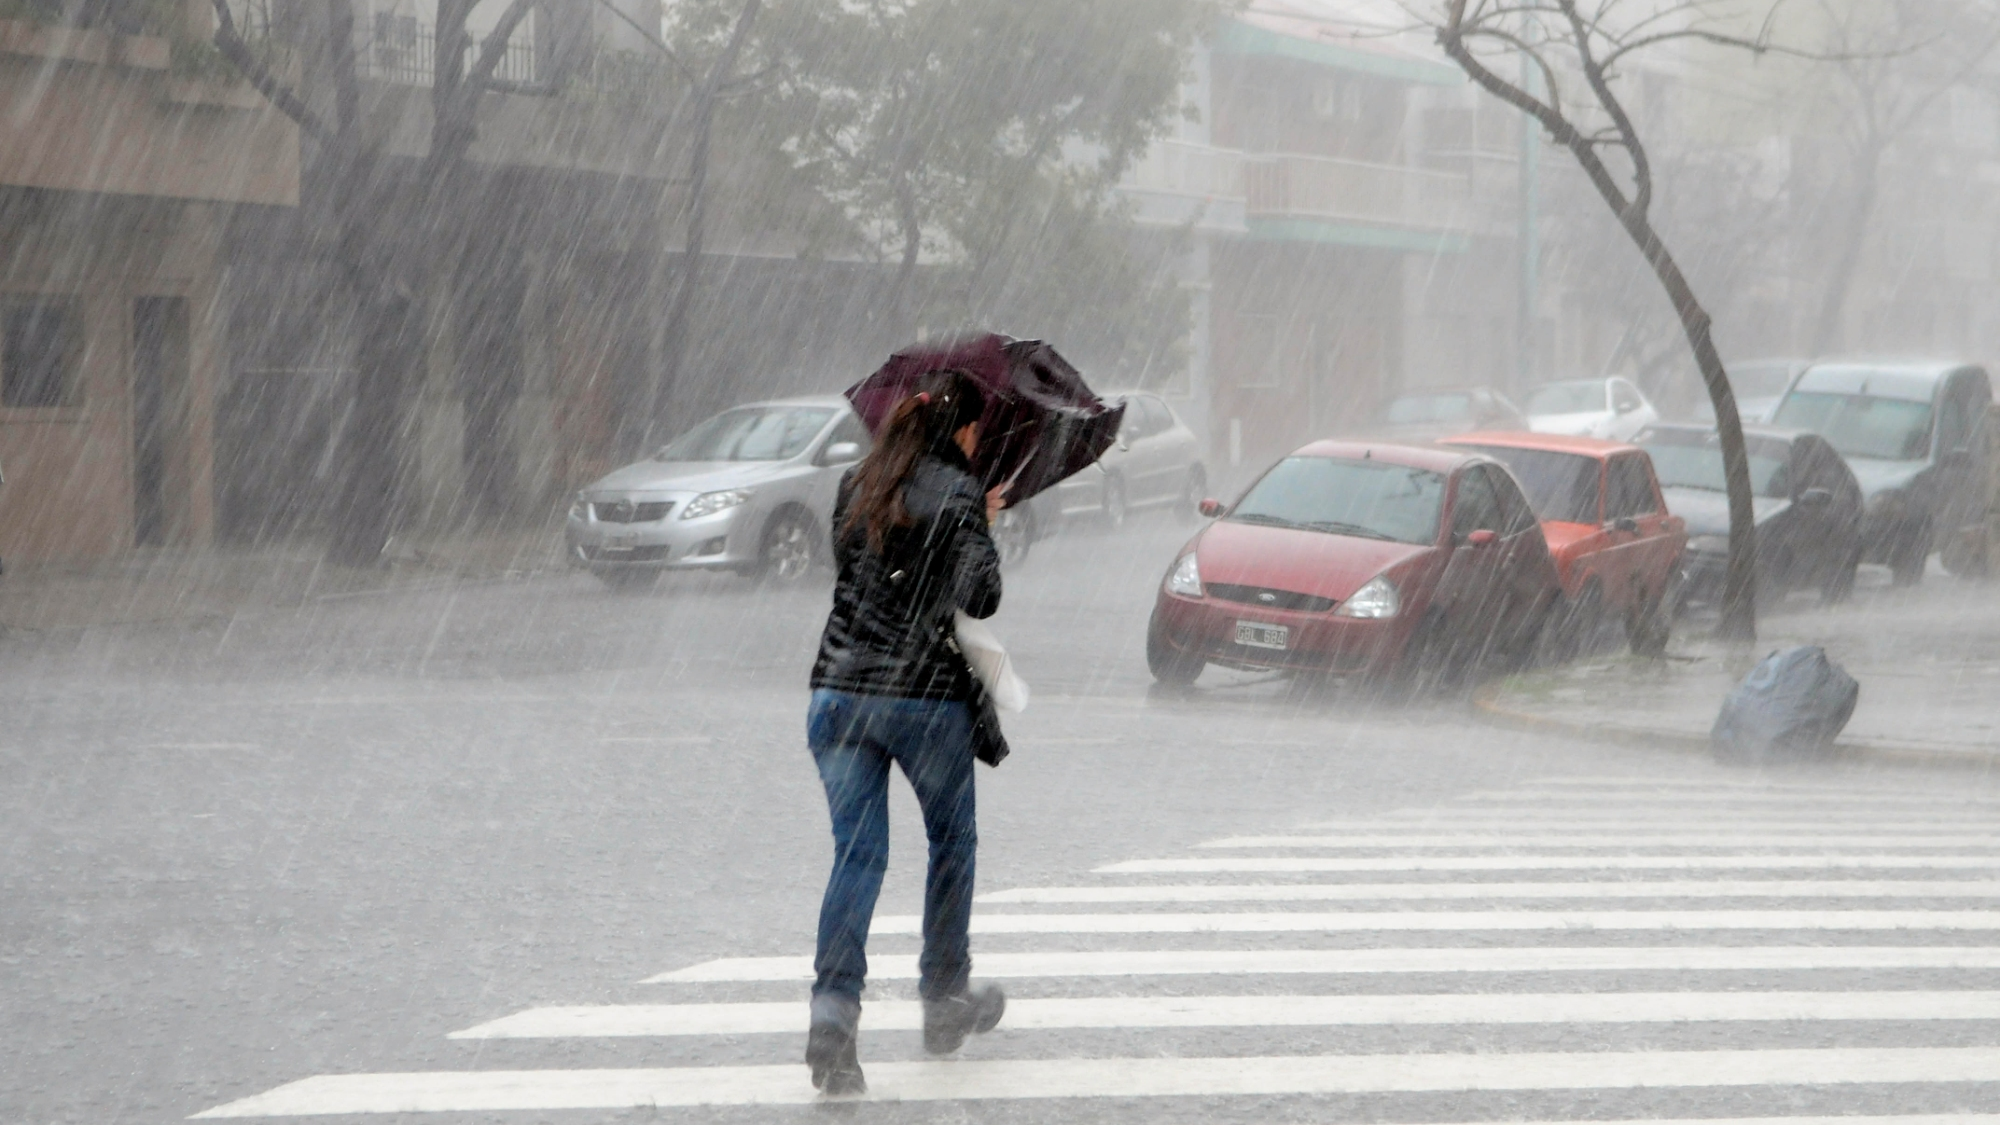 Sigue pronóstico de lluvias intensas en la mayor parte del país